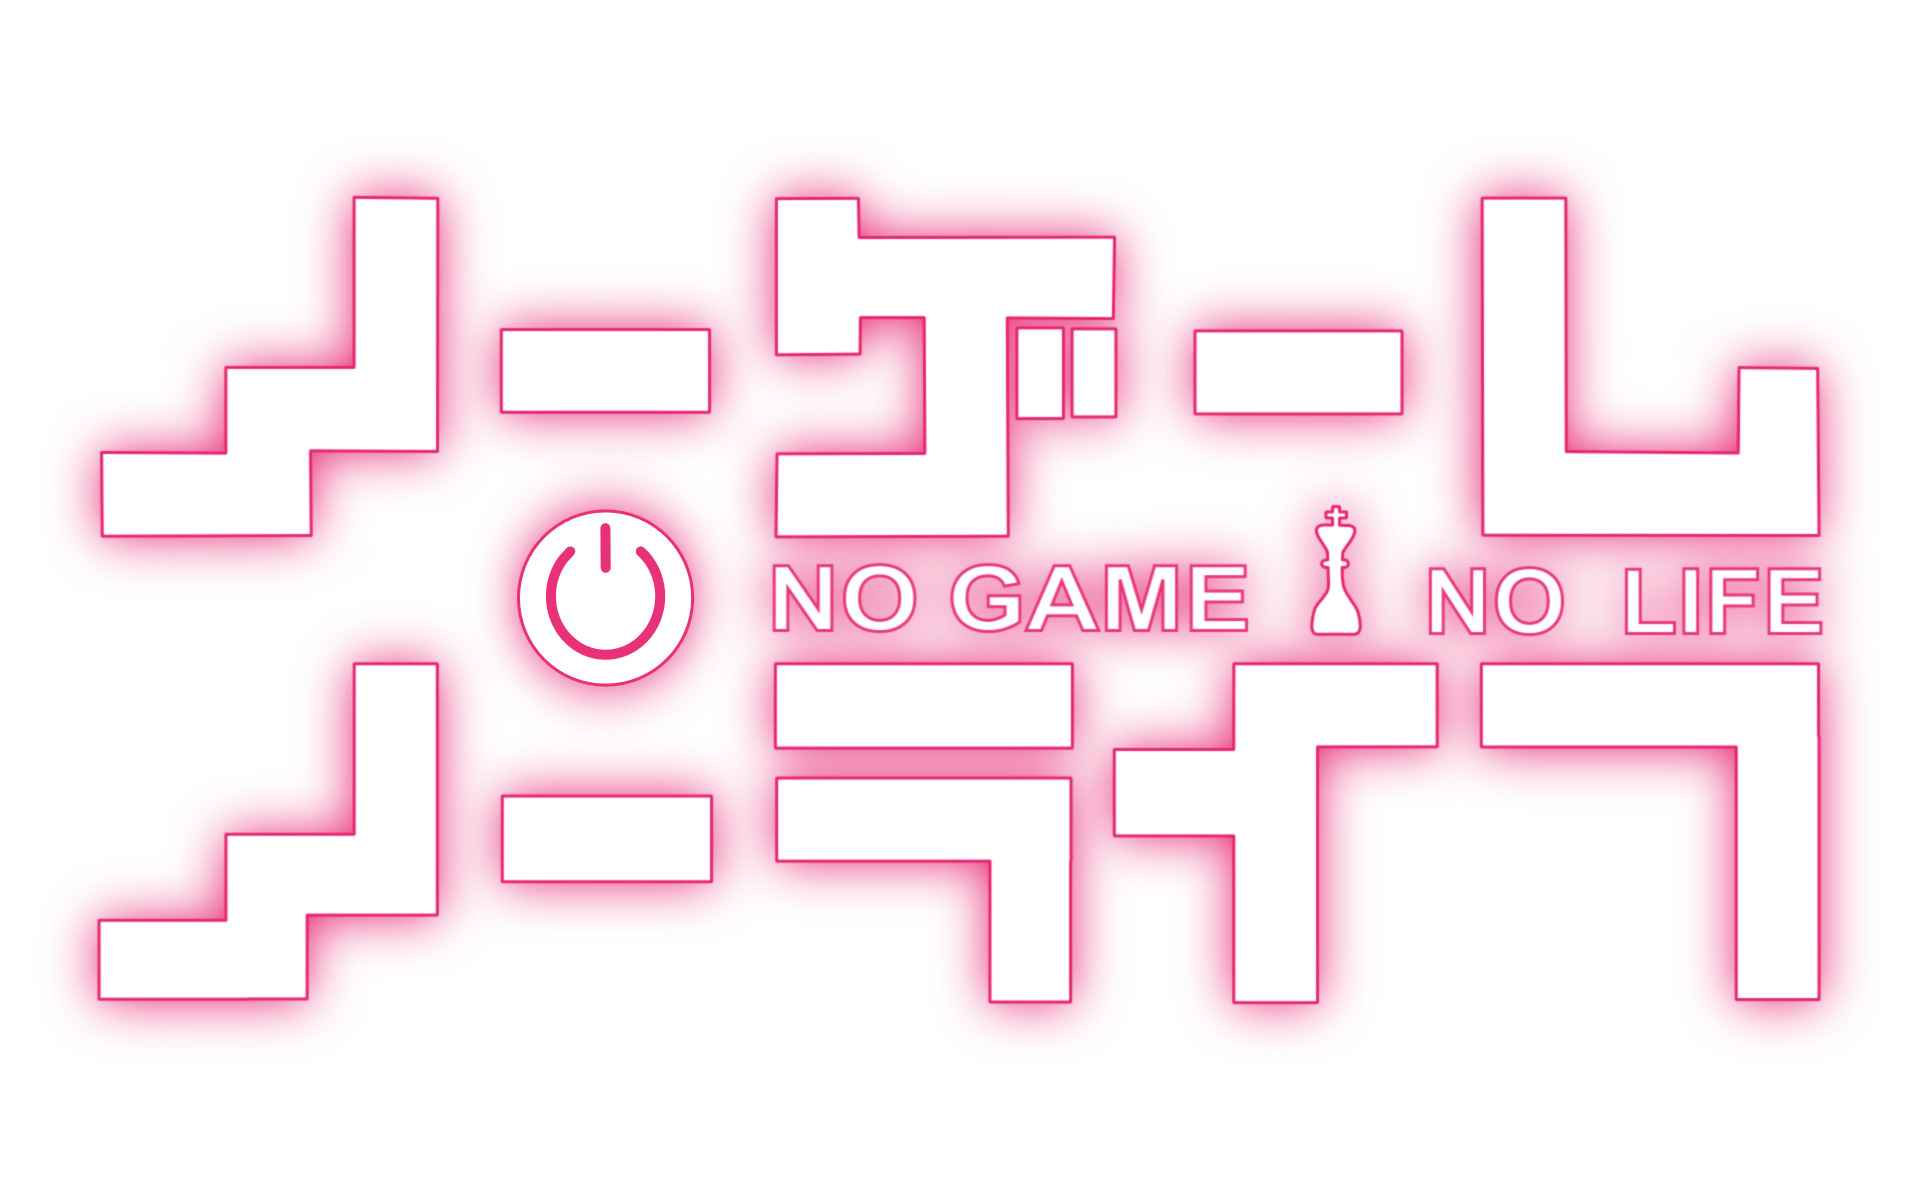 no game no life, logo wallpapers hd / desktop and mobile backgrounds